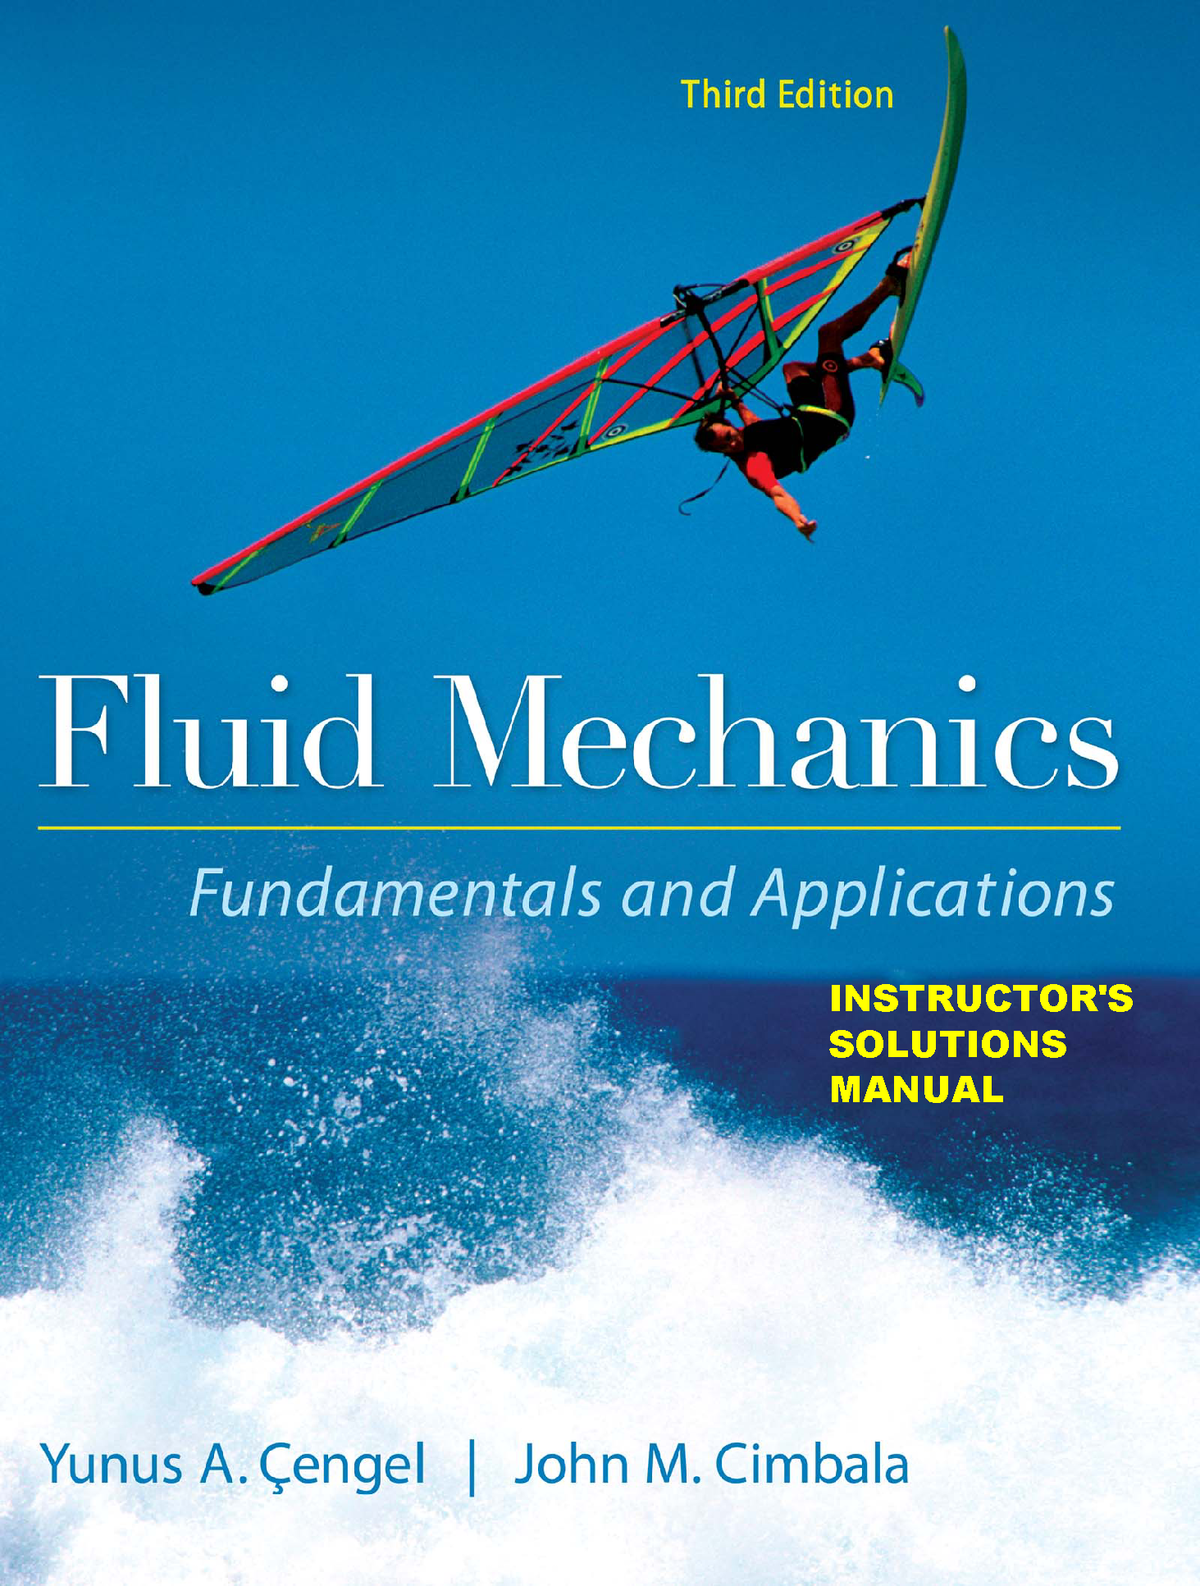 Mechanica fluids - solution manual - StuDocu